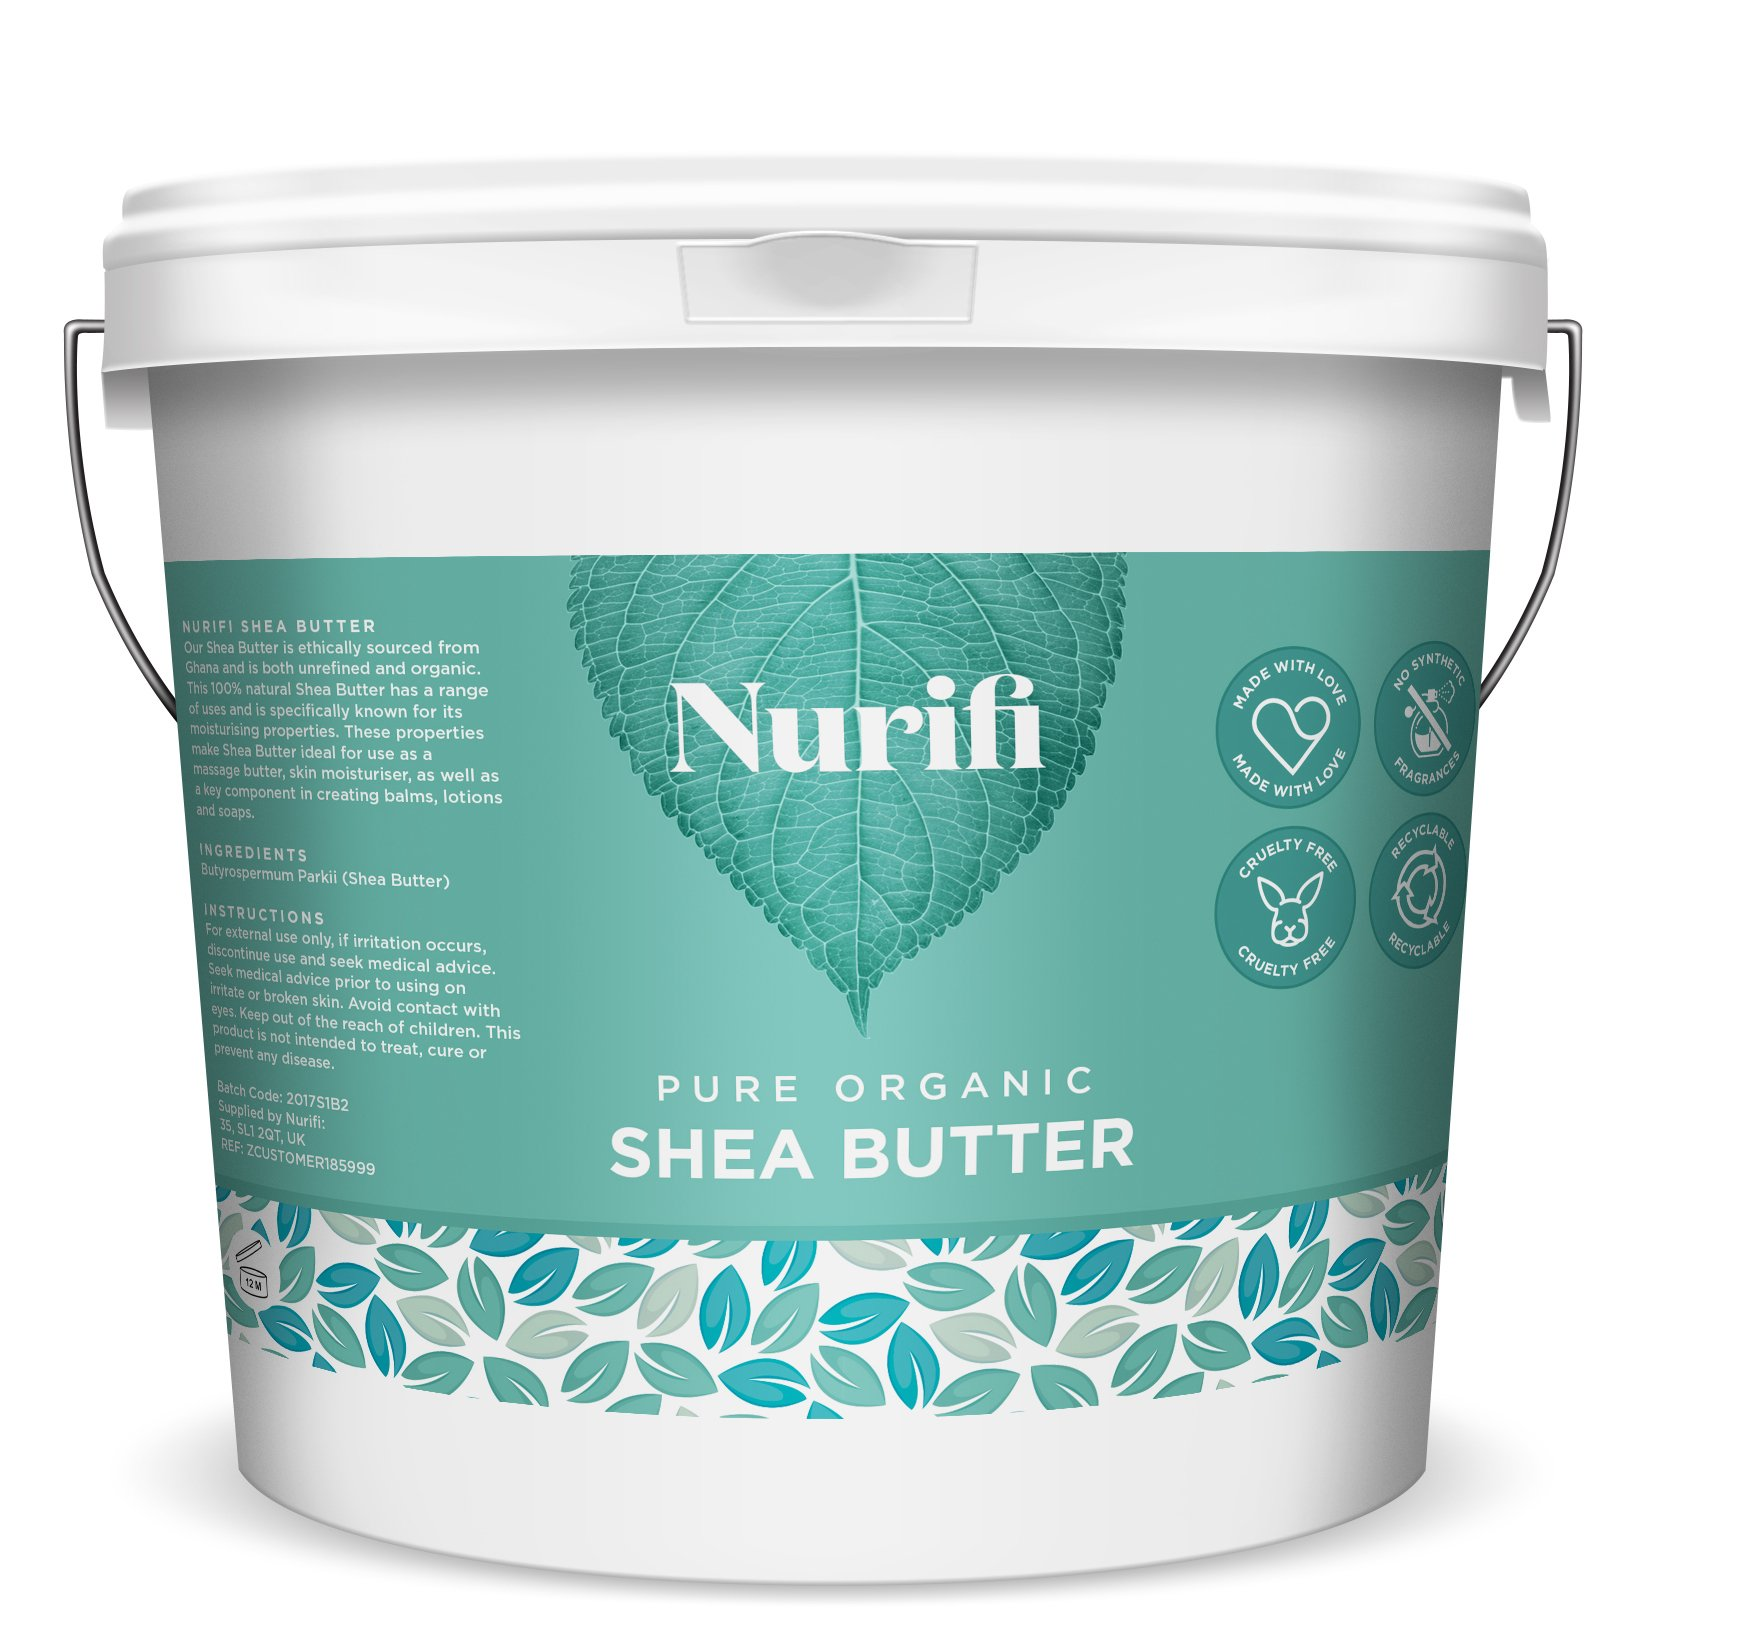 1KG Organic Shea Butter Unrefined – 100% Pure, Raw & Natural – Soil Association Certified – by Nurifi